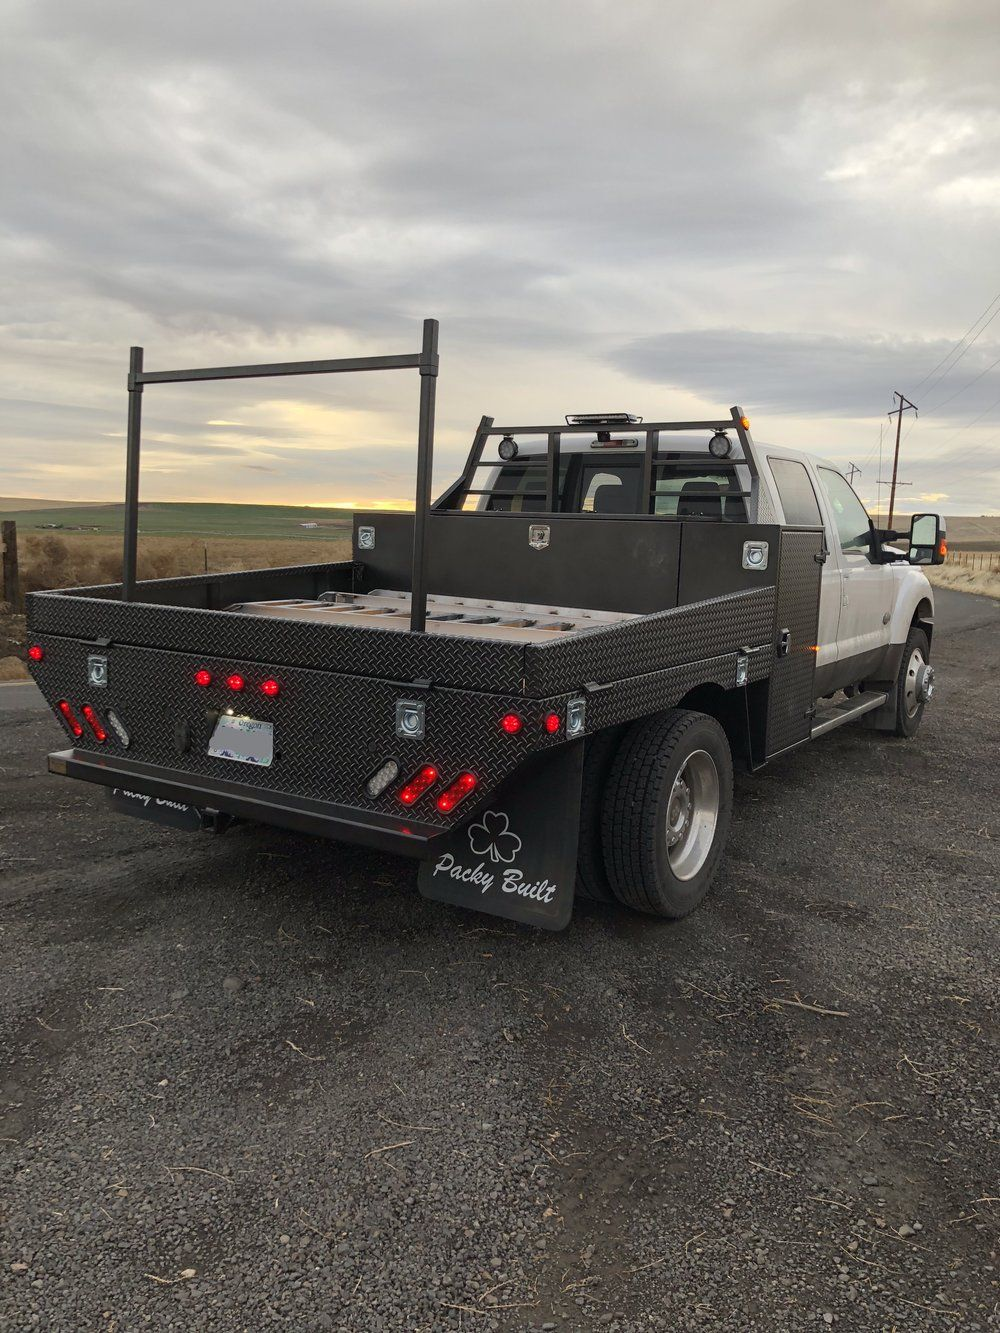 Flatbed For Dodge 3500 Dually : flatbed, dodge, dually, Flatbed, Ideas